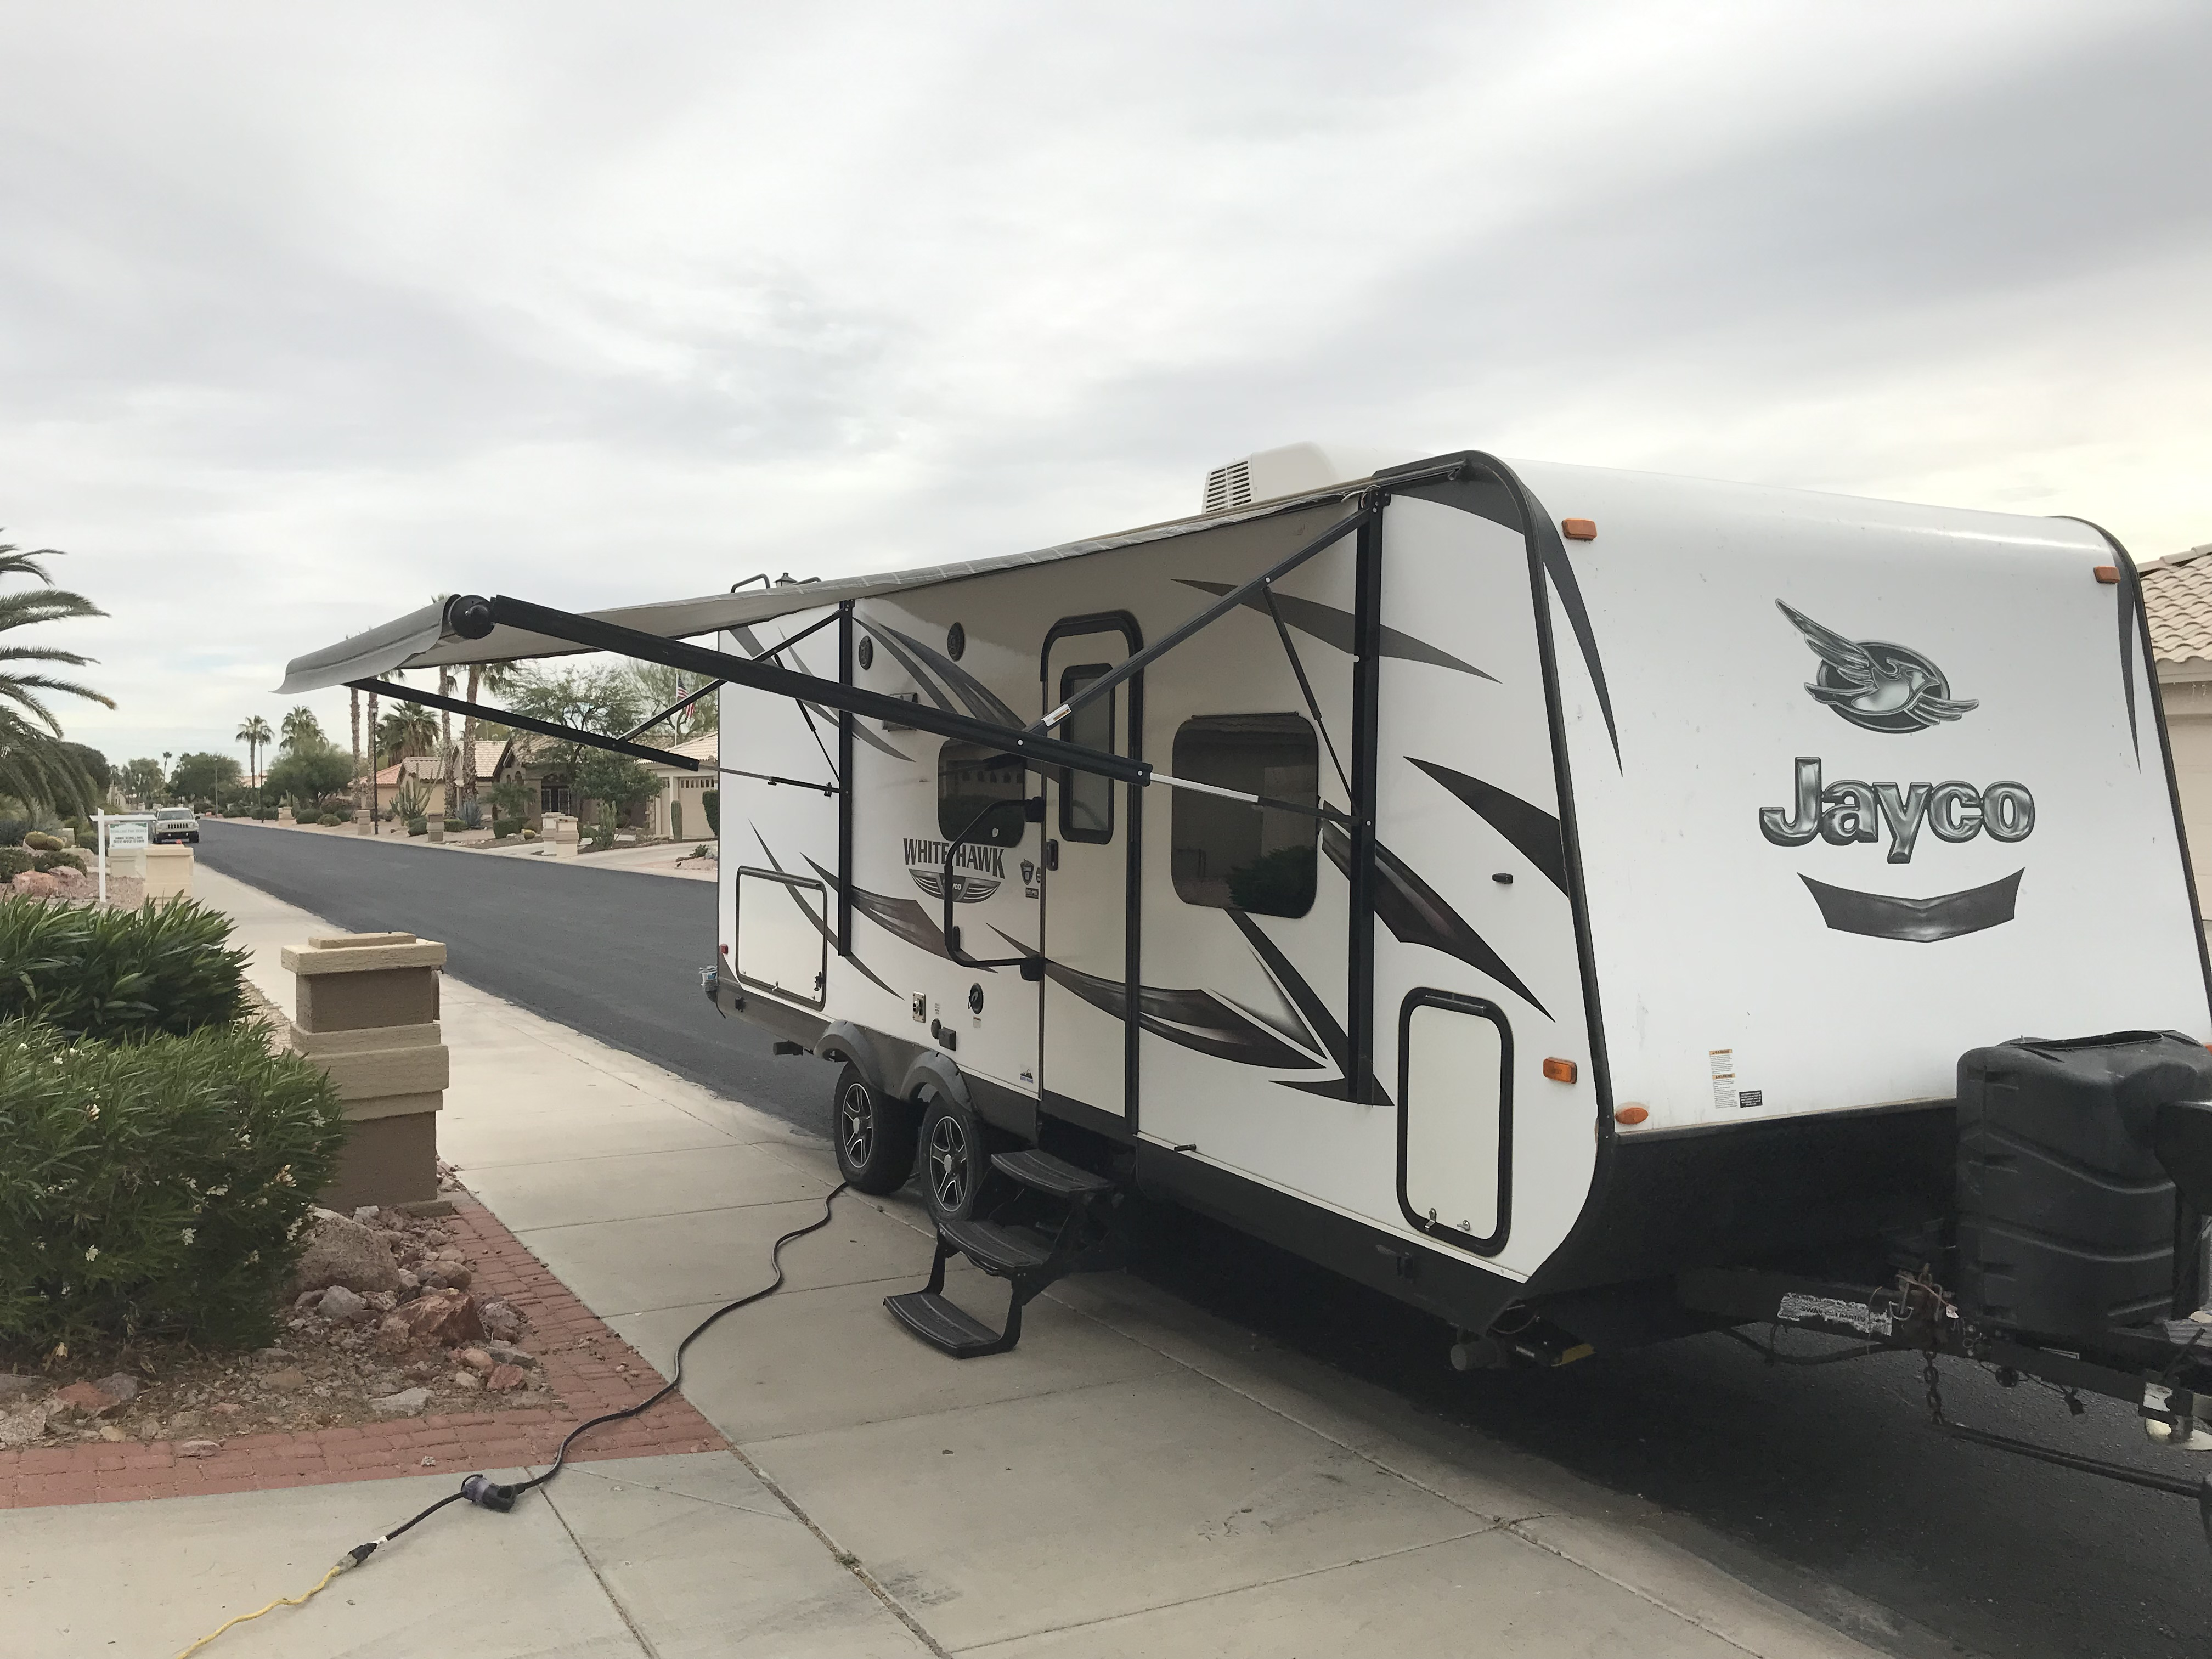 Power awning extended. Jayco White Hawk 23MRB 2016